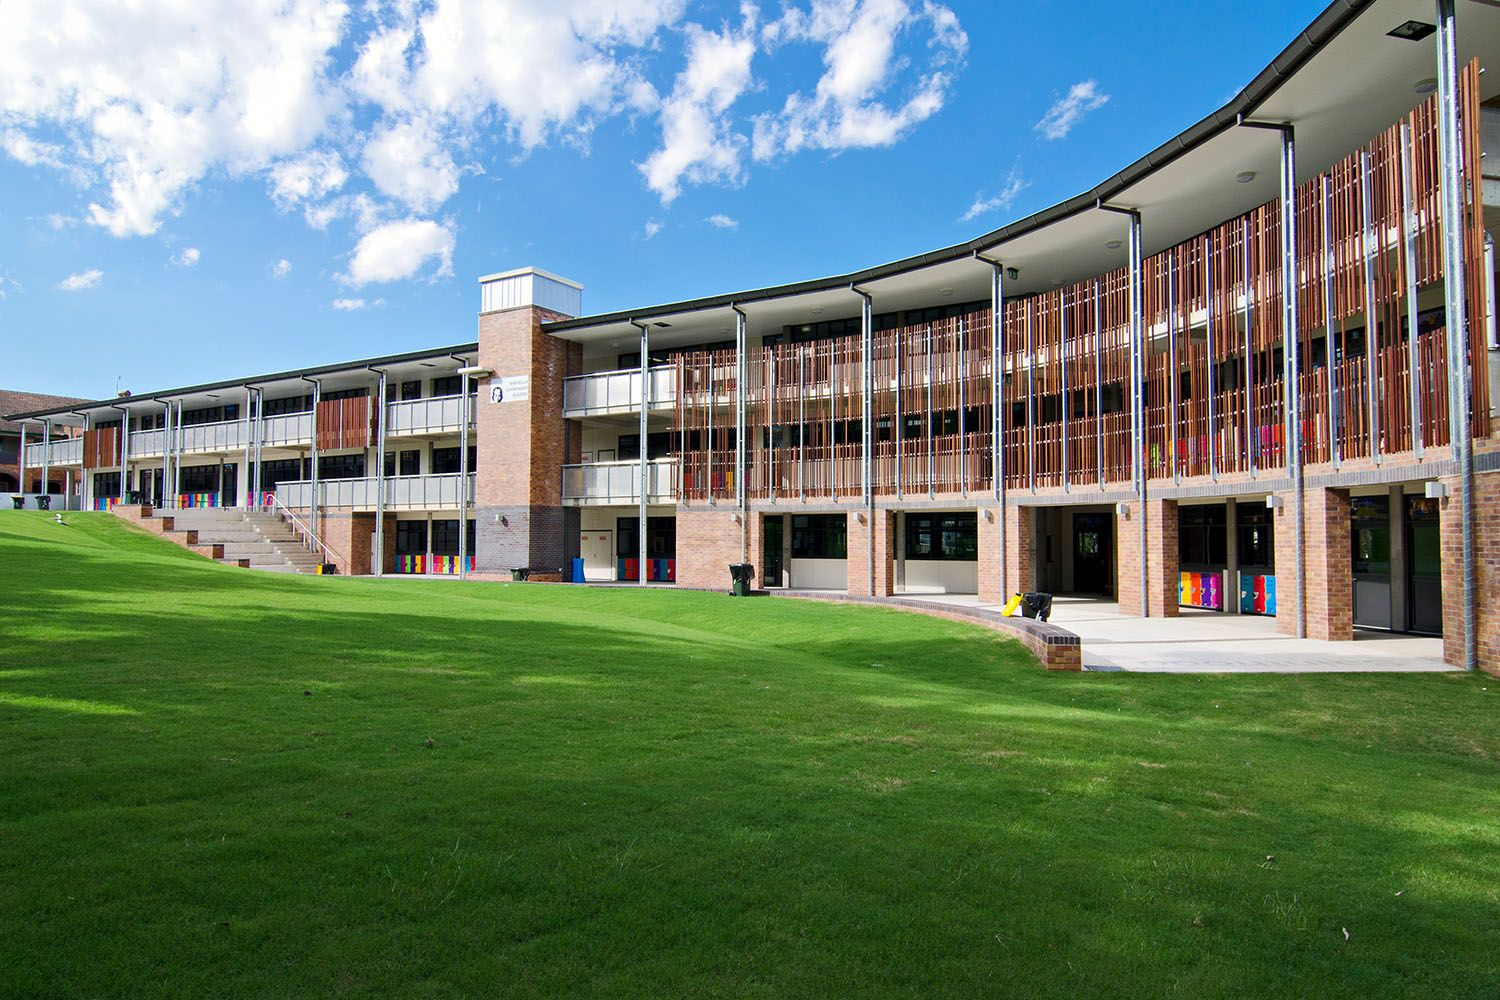 Mt maria college marcellin champagnat building for College building design